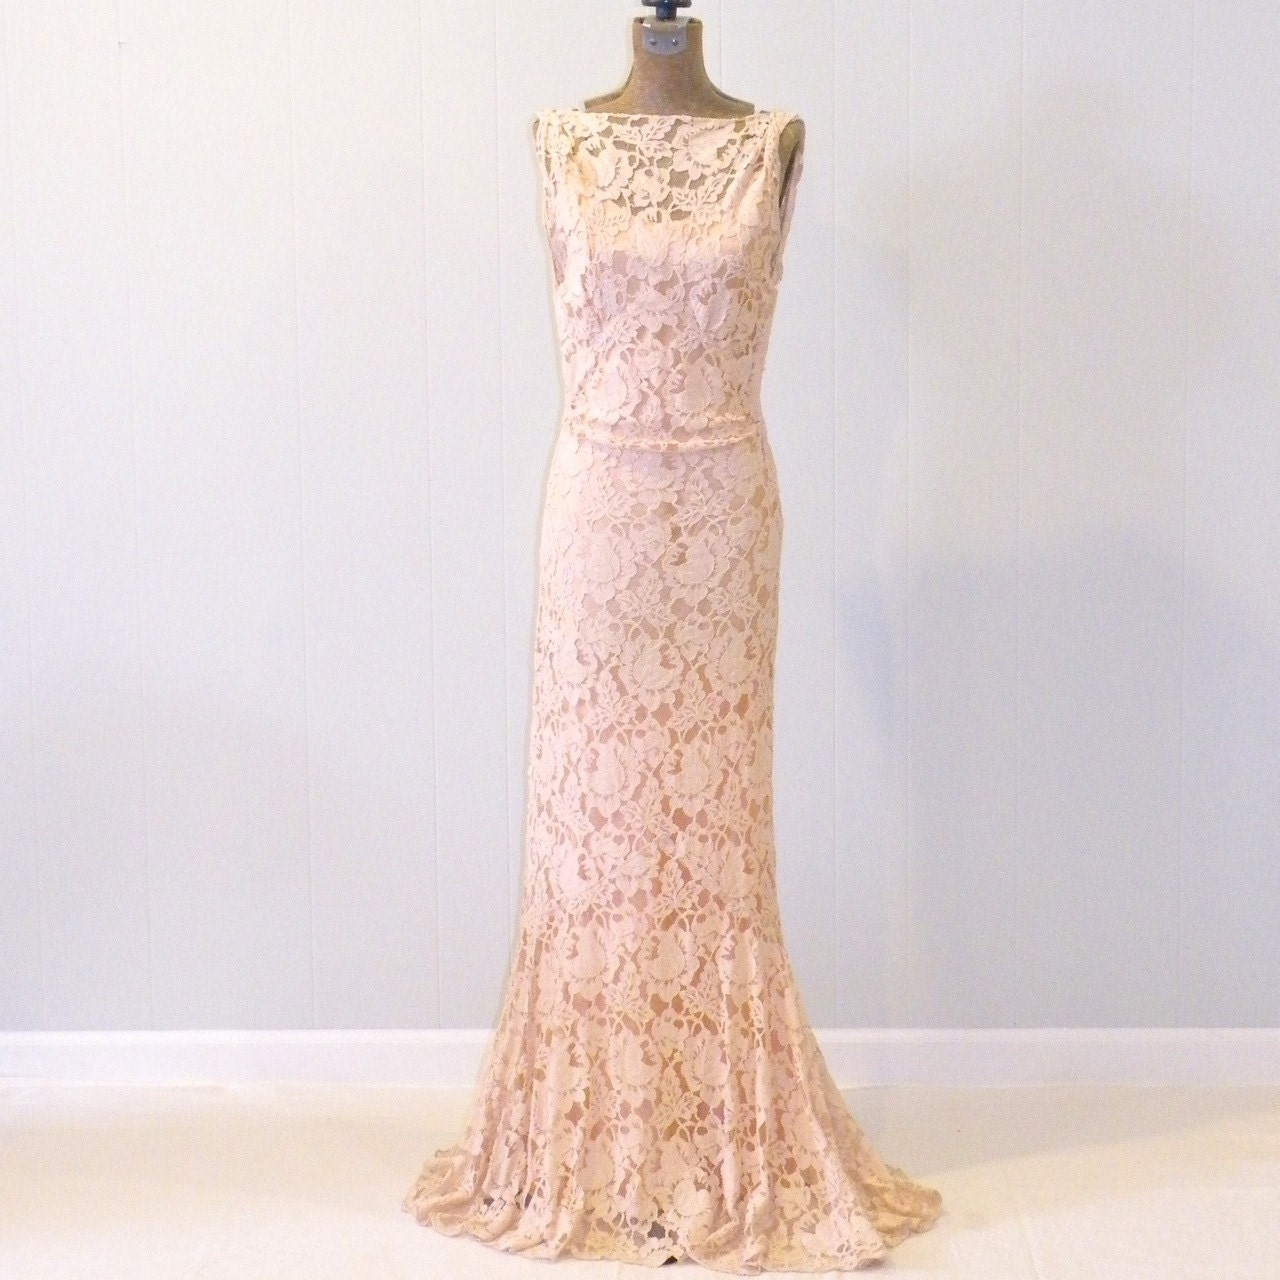 Vintage 1930s Dress 30s Blush Lace Evening Gown And Satin